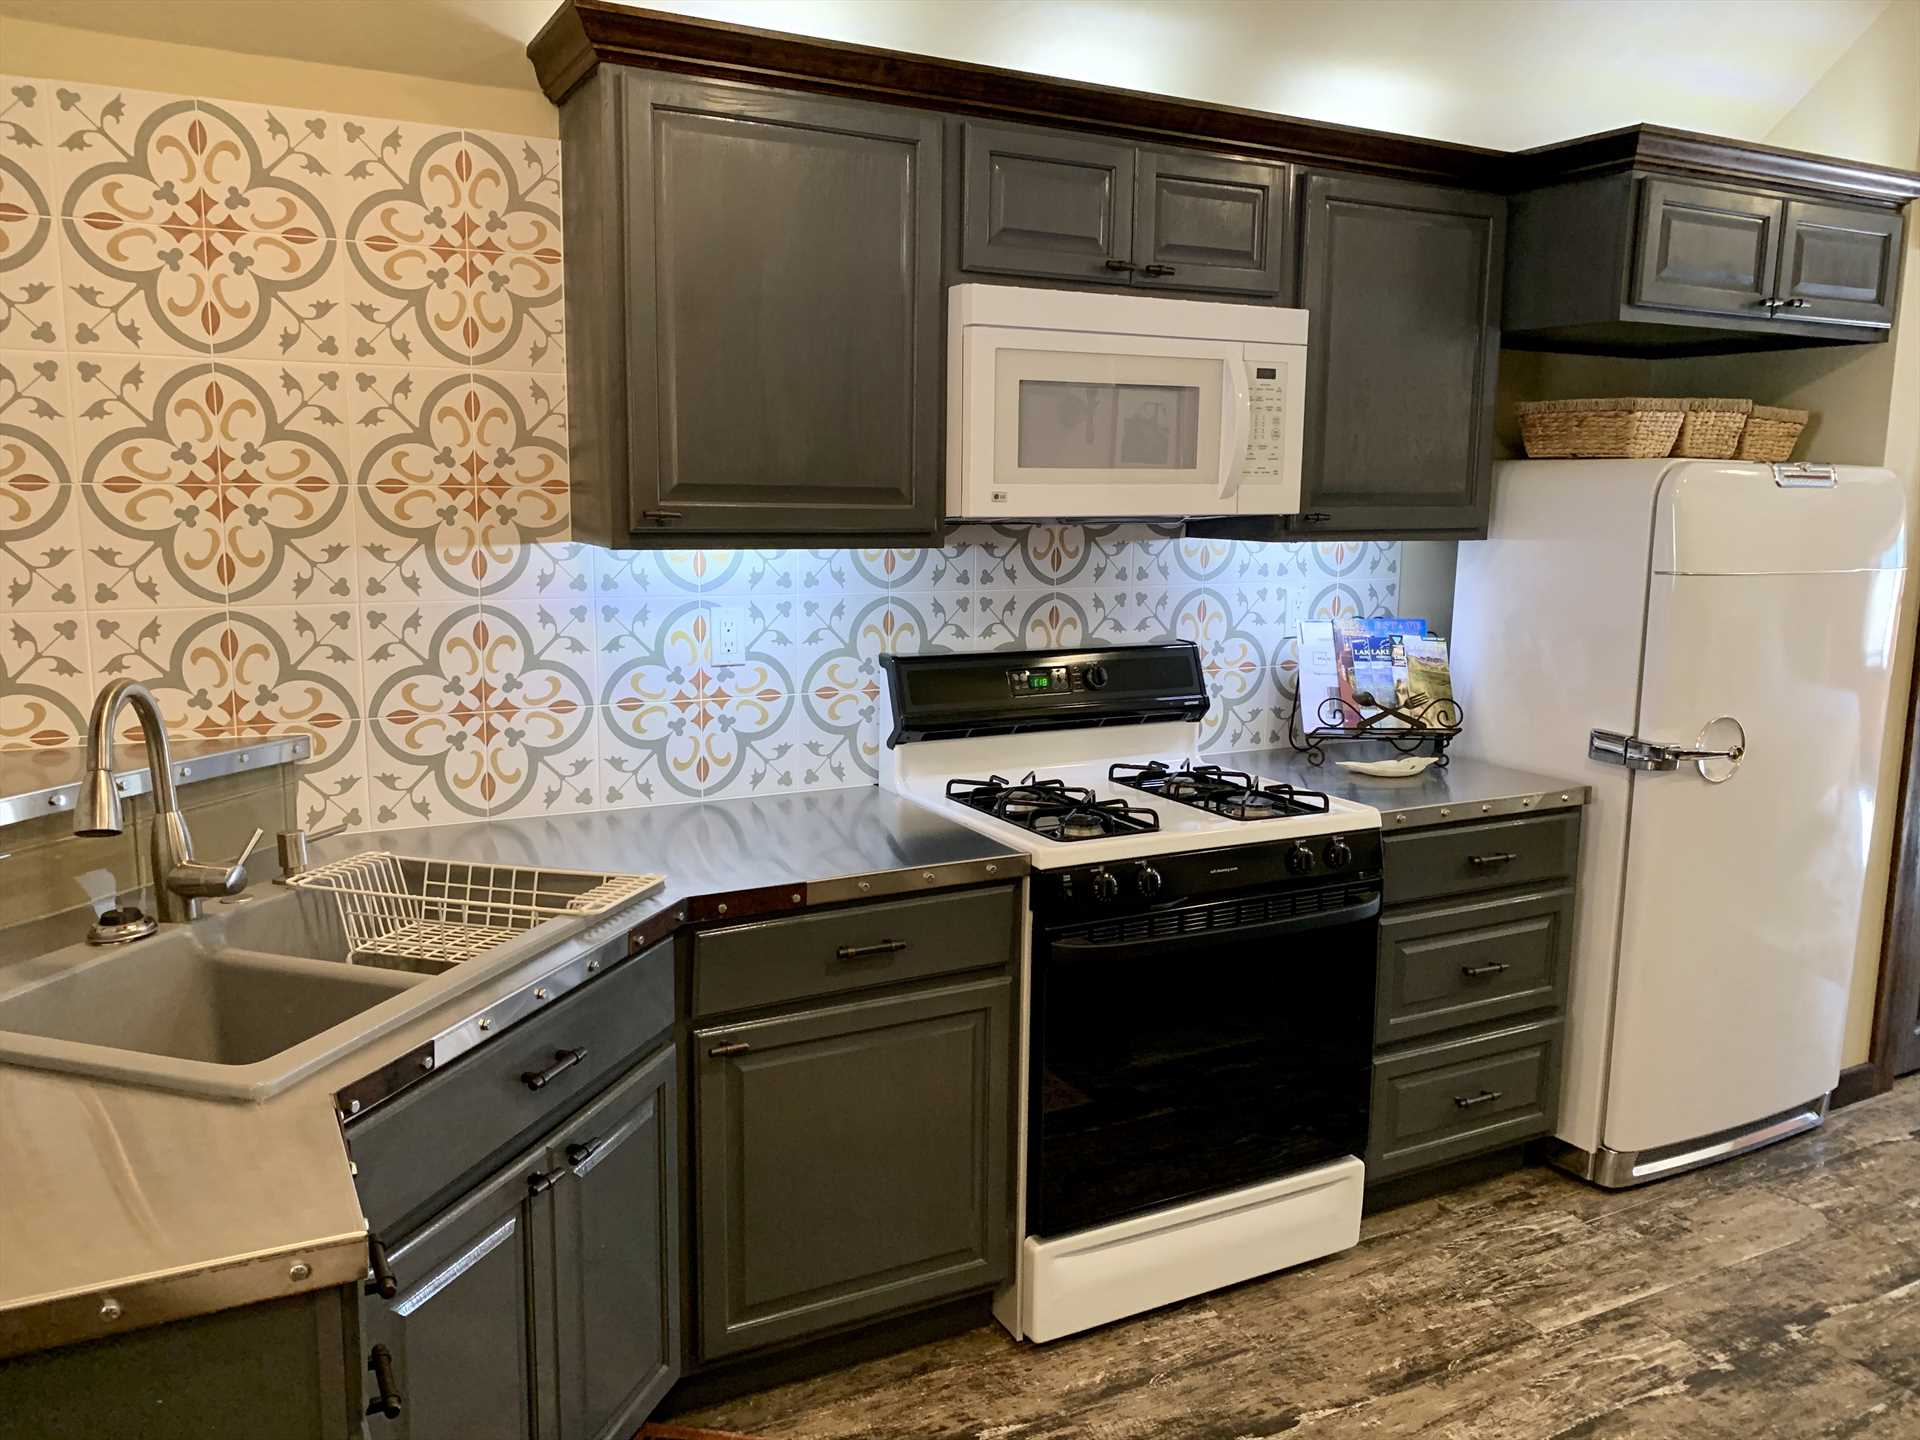 Kitchen area with antique refrigerator